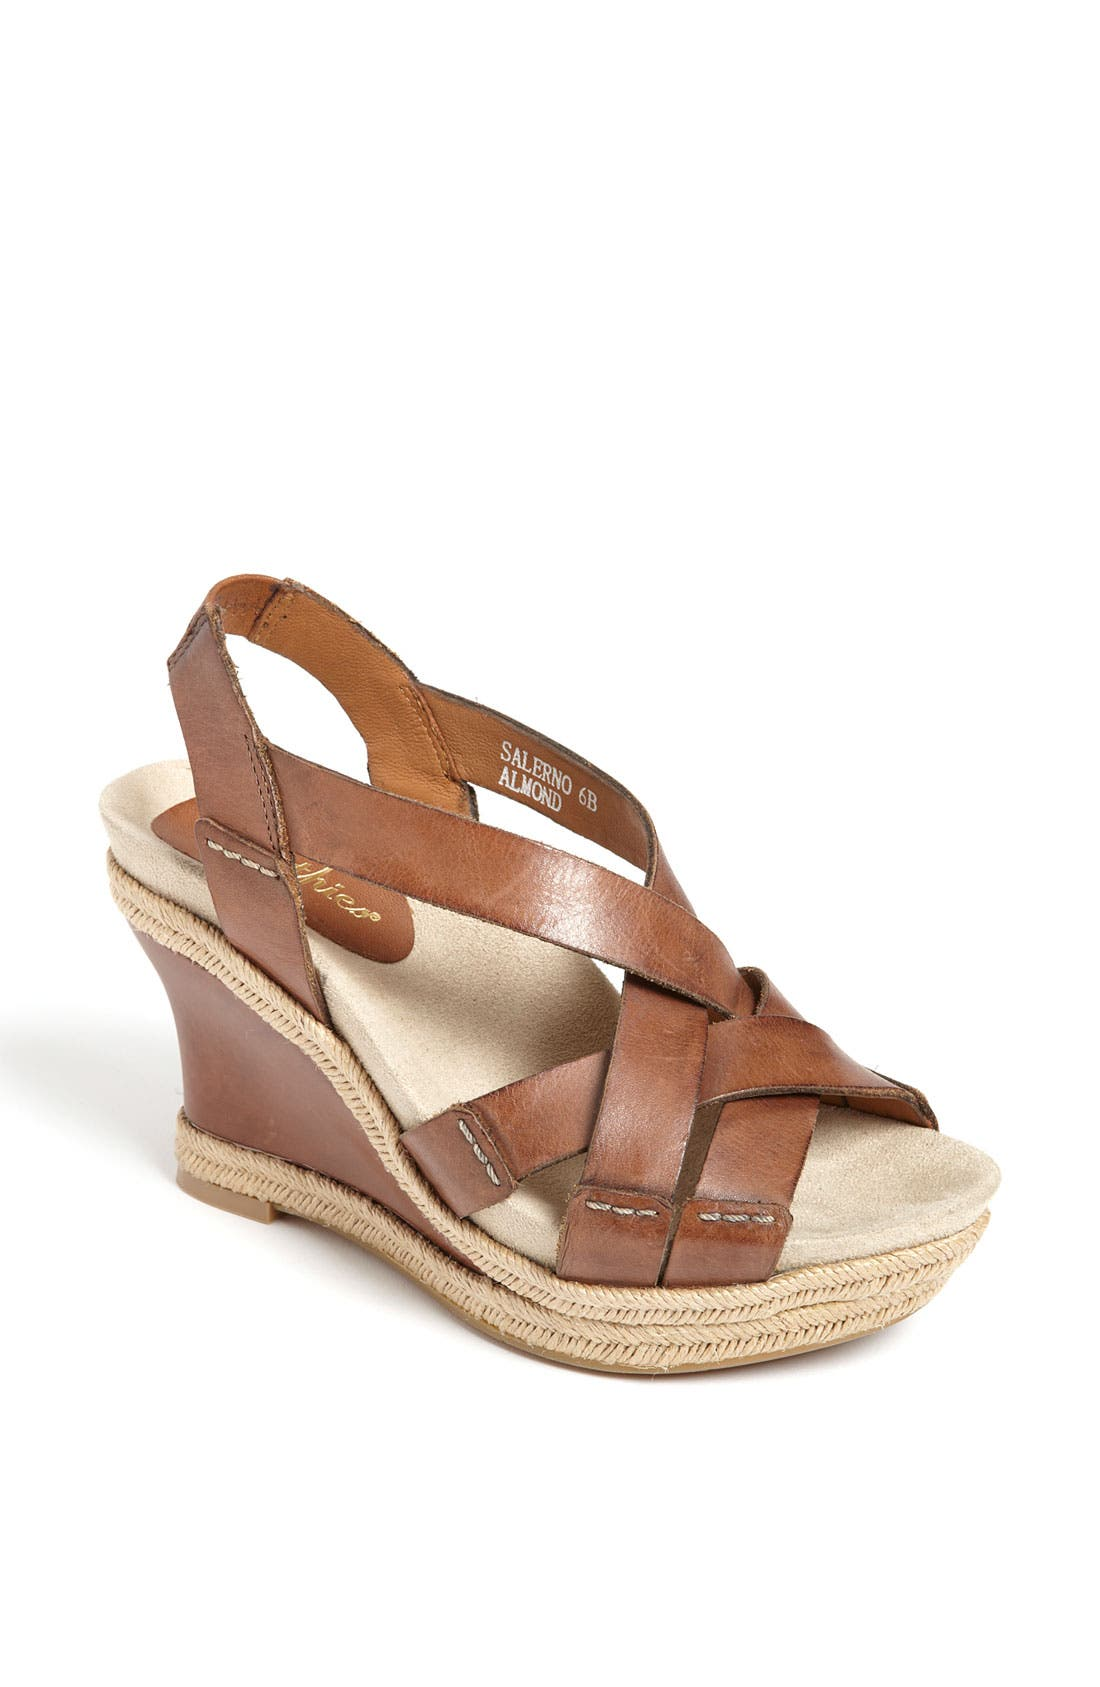 Main Image - Earthies® 'Salerno' Wedge Sandal